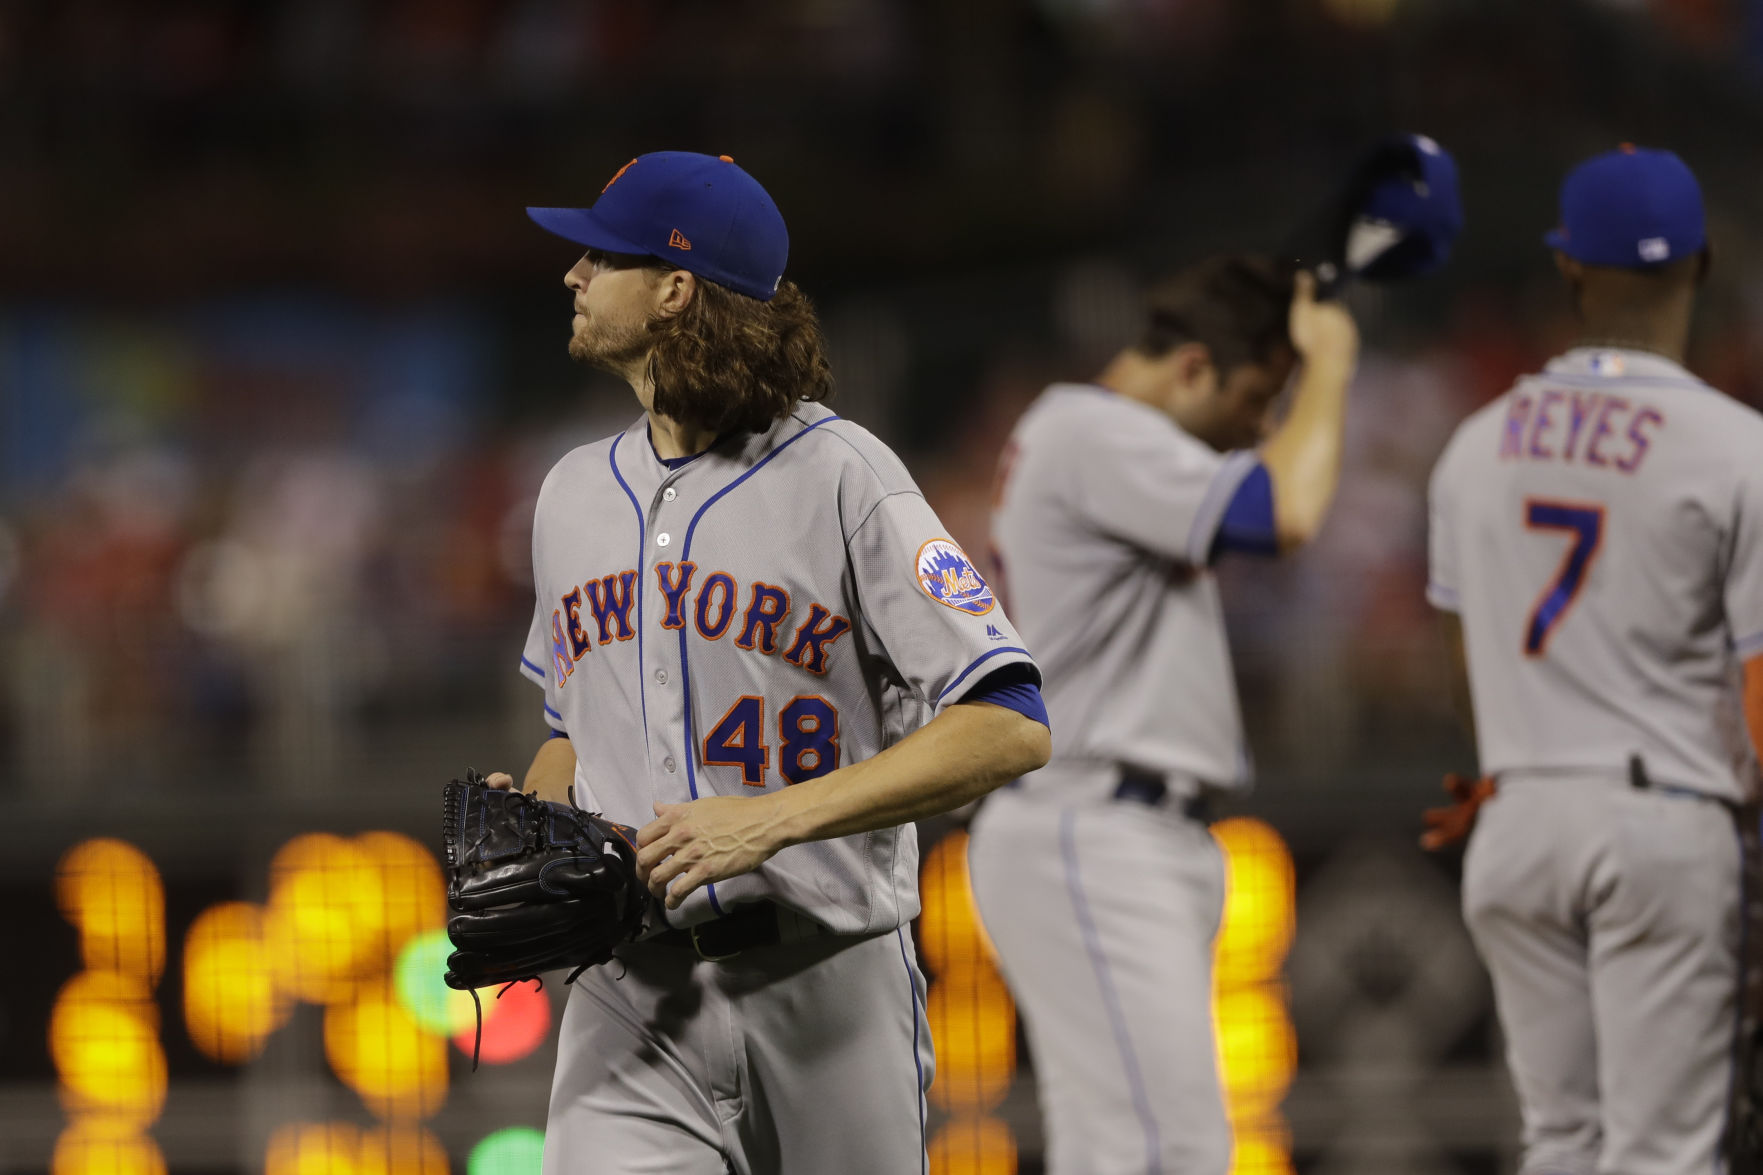 Jacob deGrom exits game after being hit with liner